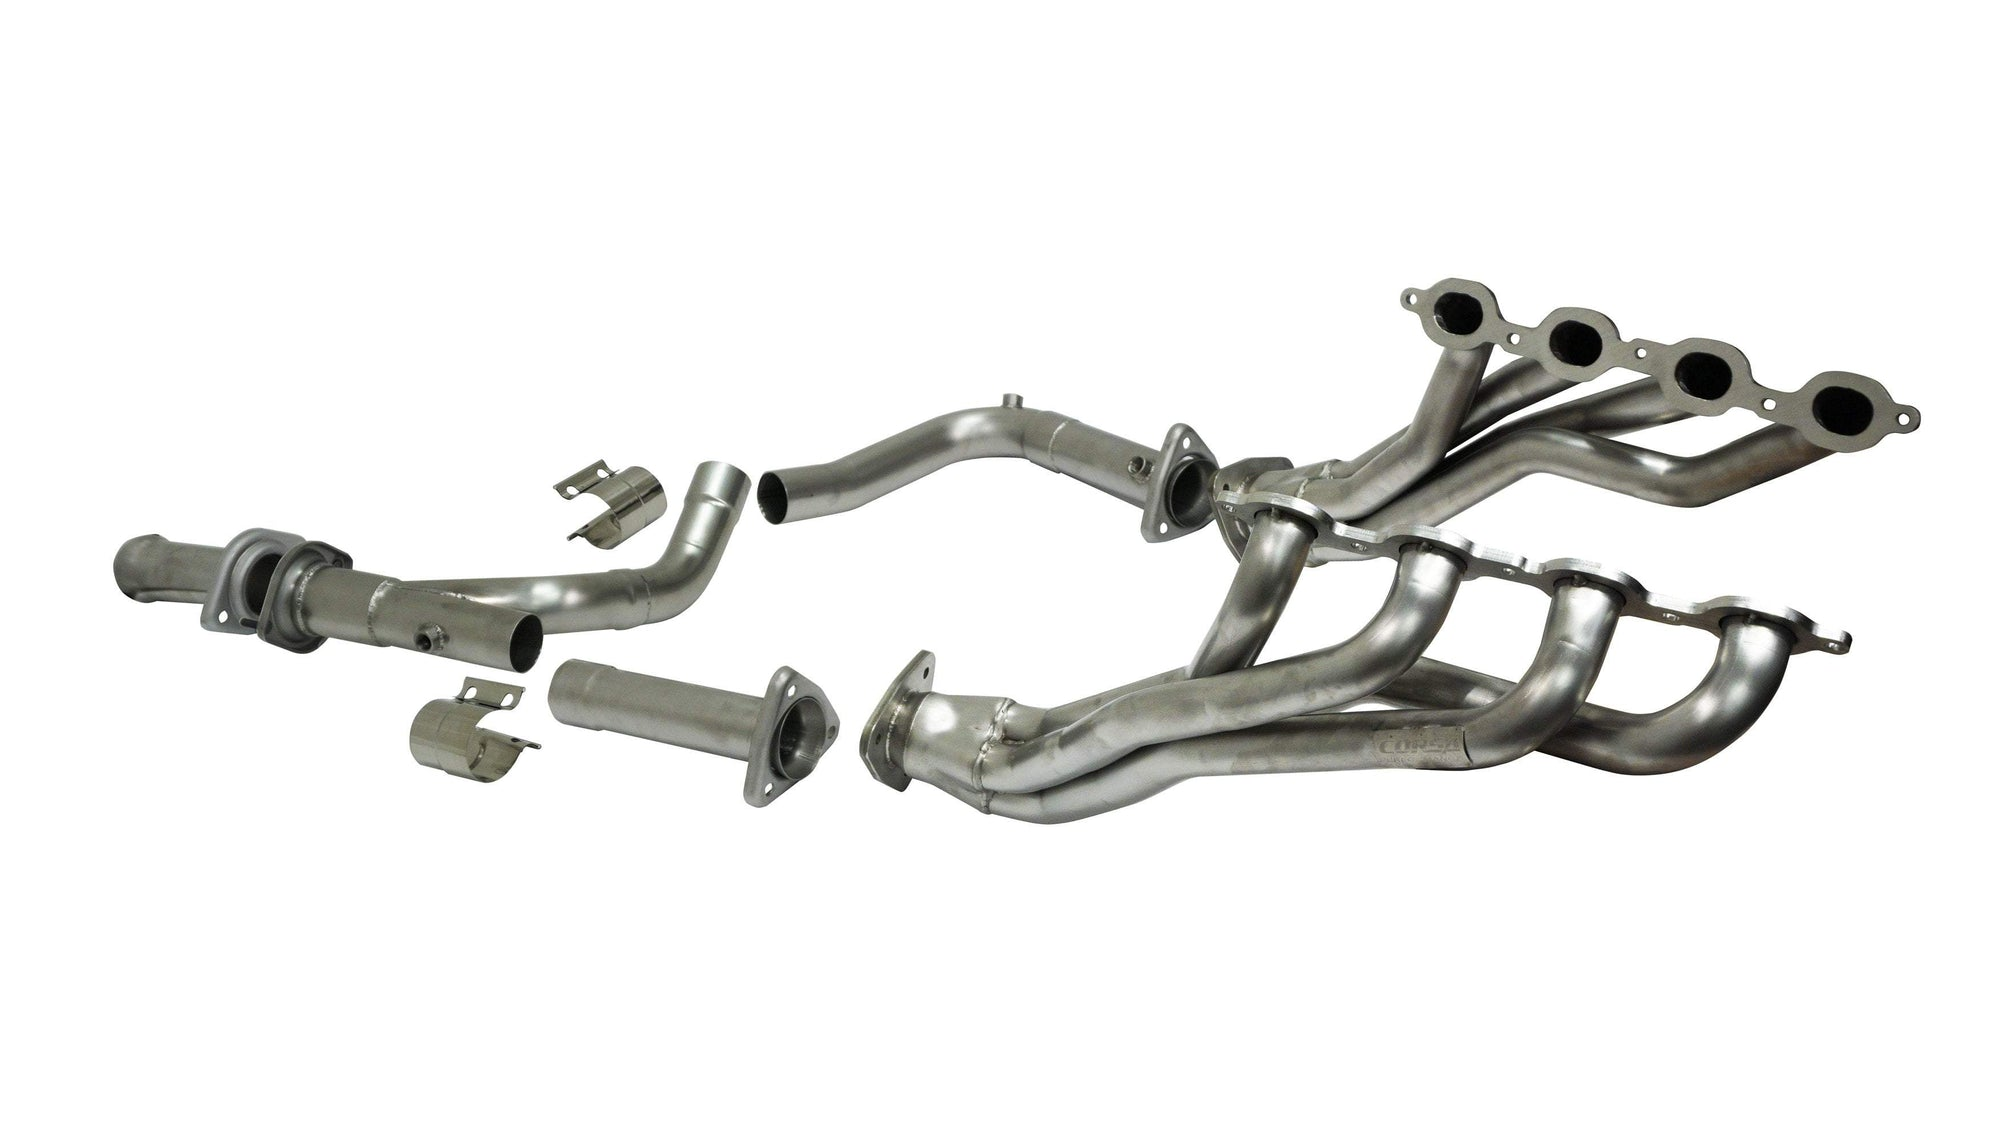 CORSA PERFORMANCE Headers 2014-2018 Chevrolet Silverado, GMC Sierra, 5.3L V8, Long Tube Headers & Catless Connection Pipes (16129)